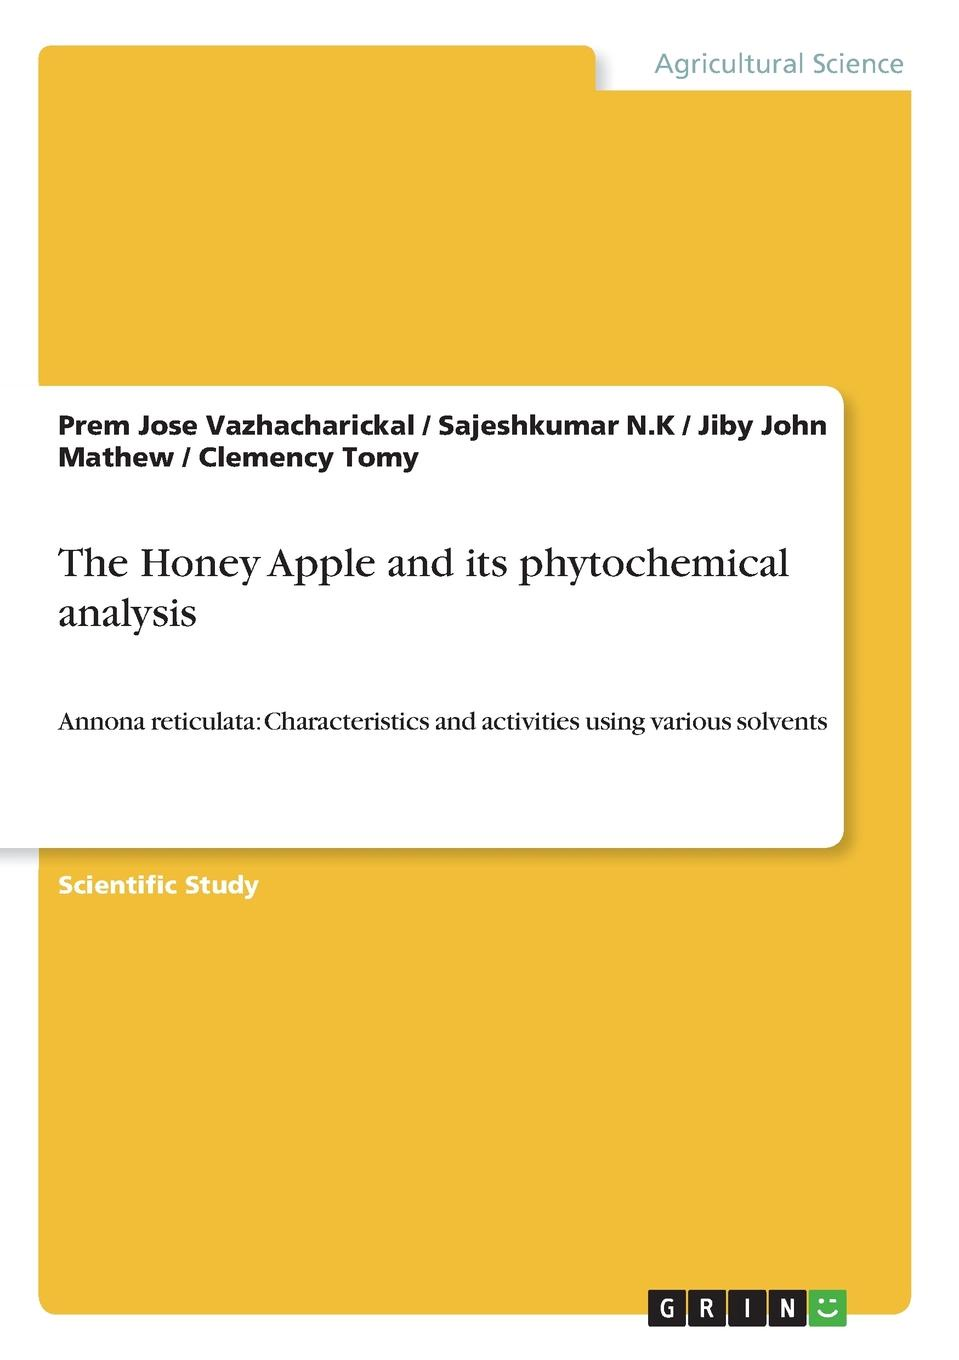 Jiby John Mathew, Prem Jose Vazhacharickal, Sajeshkumar N.K The Honey Apple and its phytochemical analysis цены